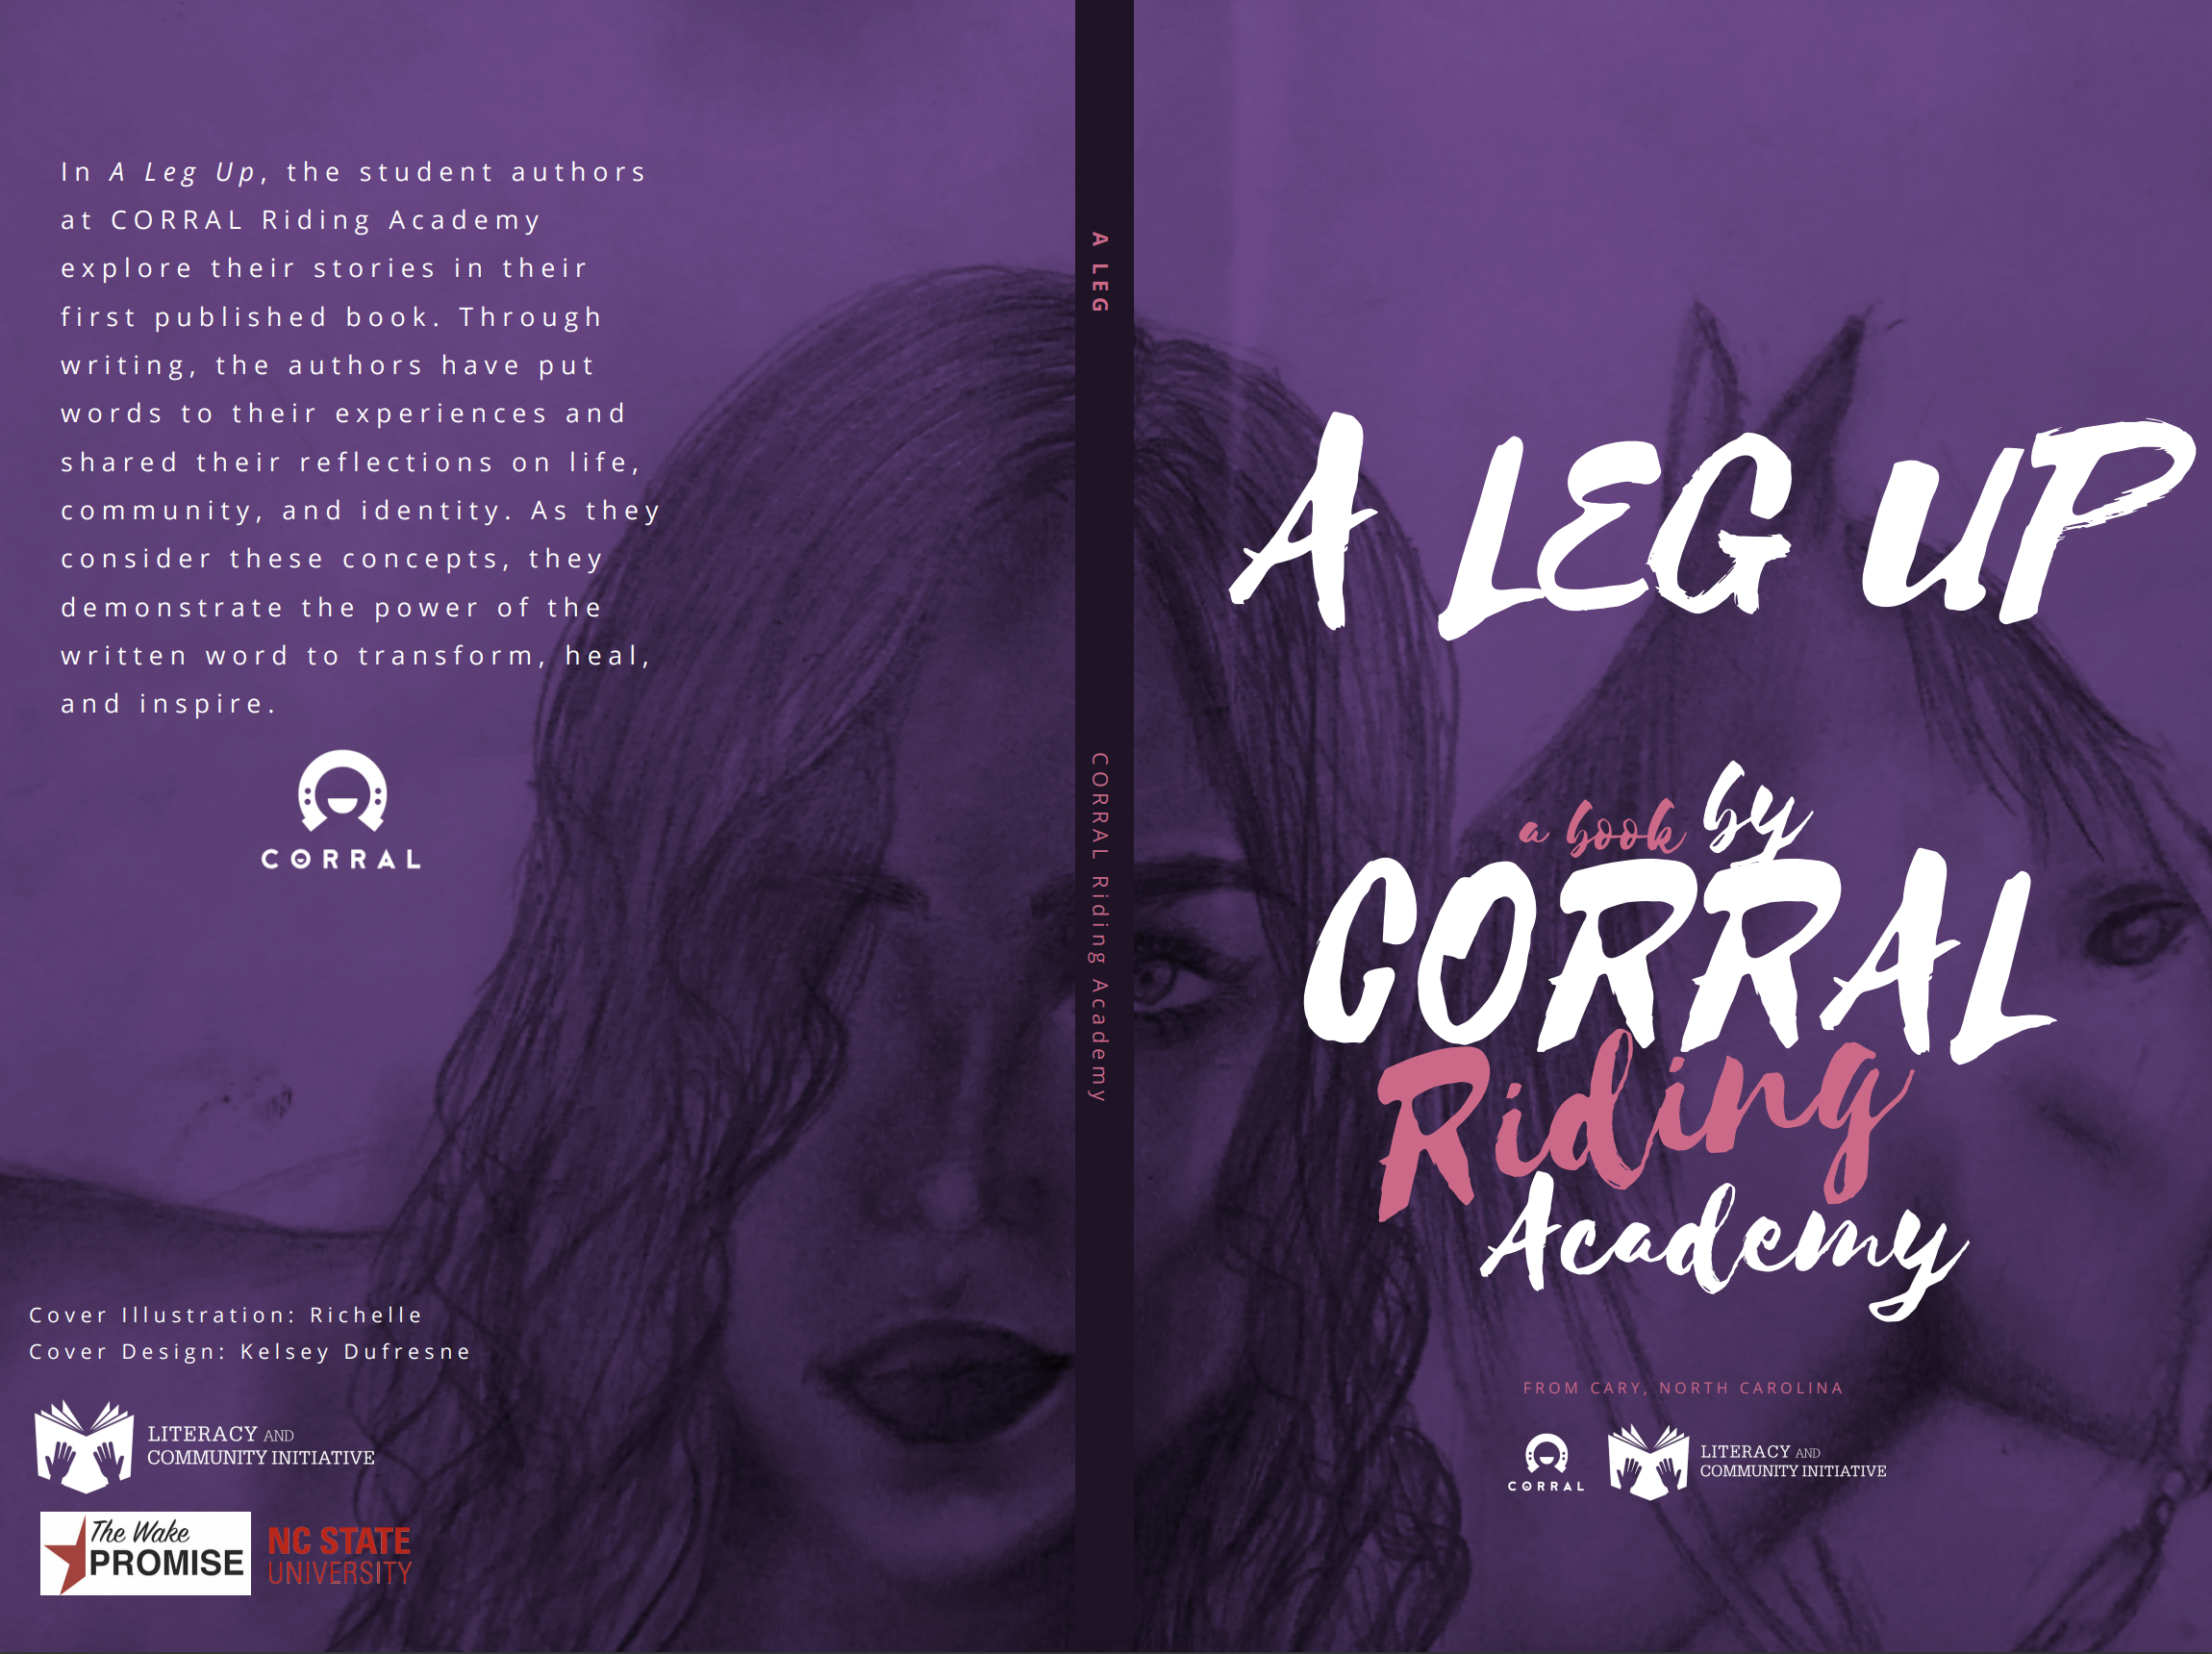 """Cover Art for the book """"For a Leg Up"""""""